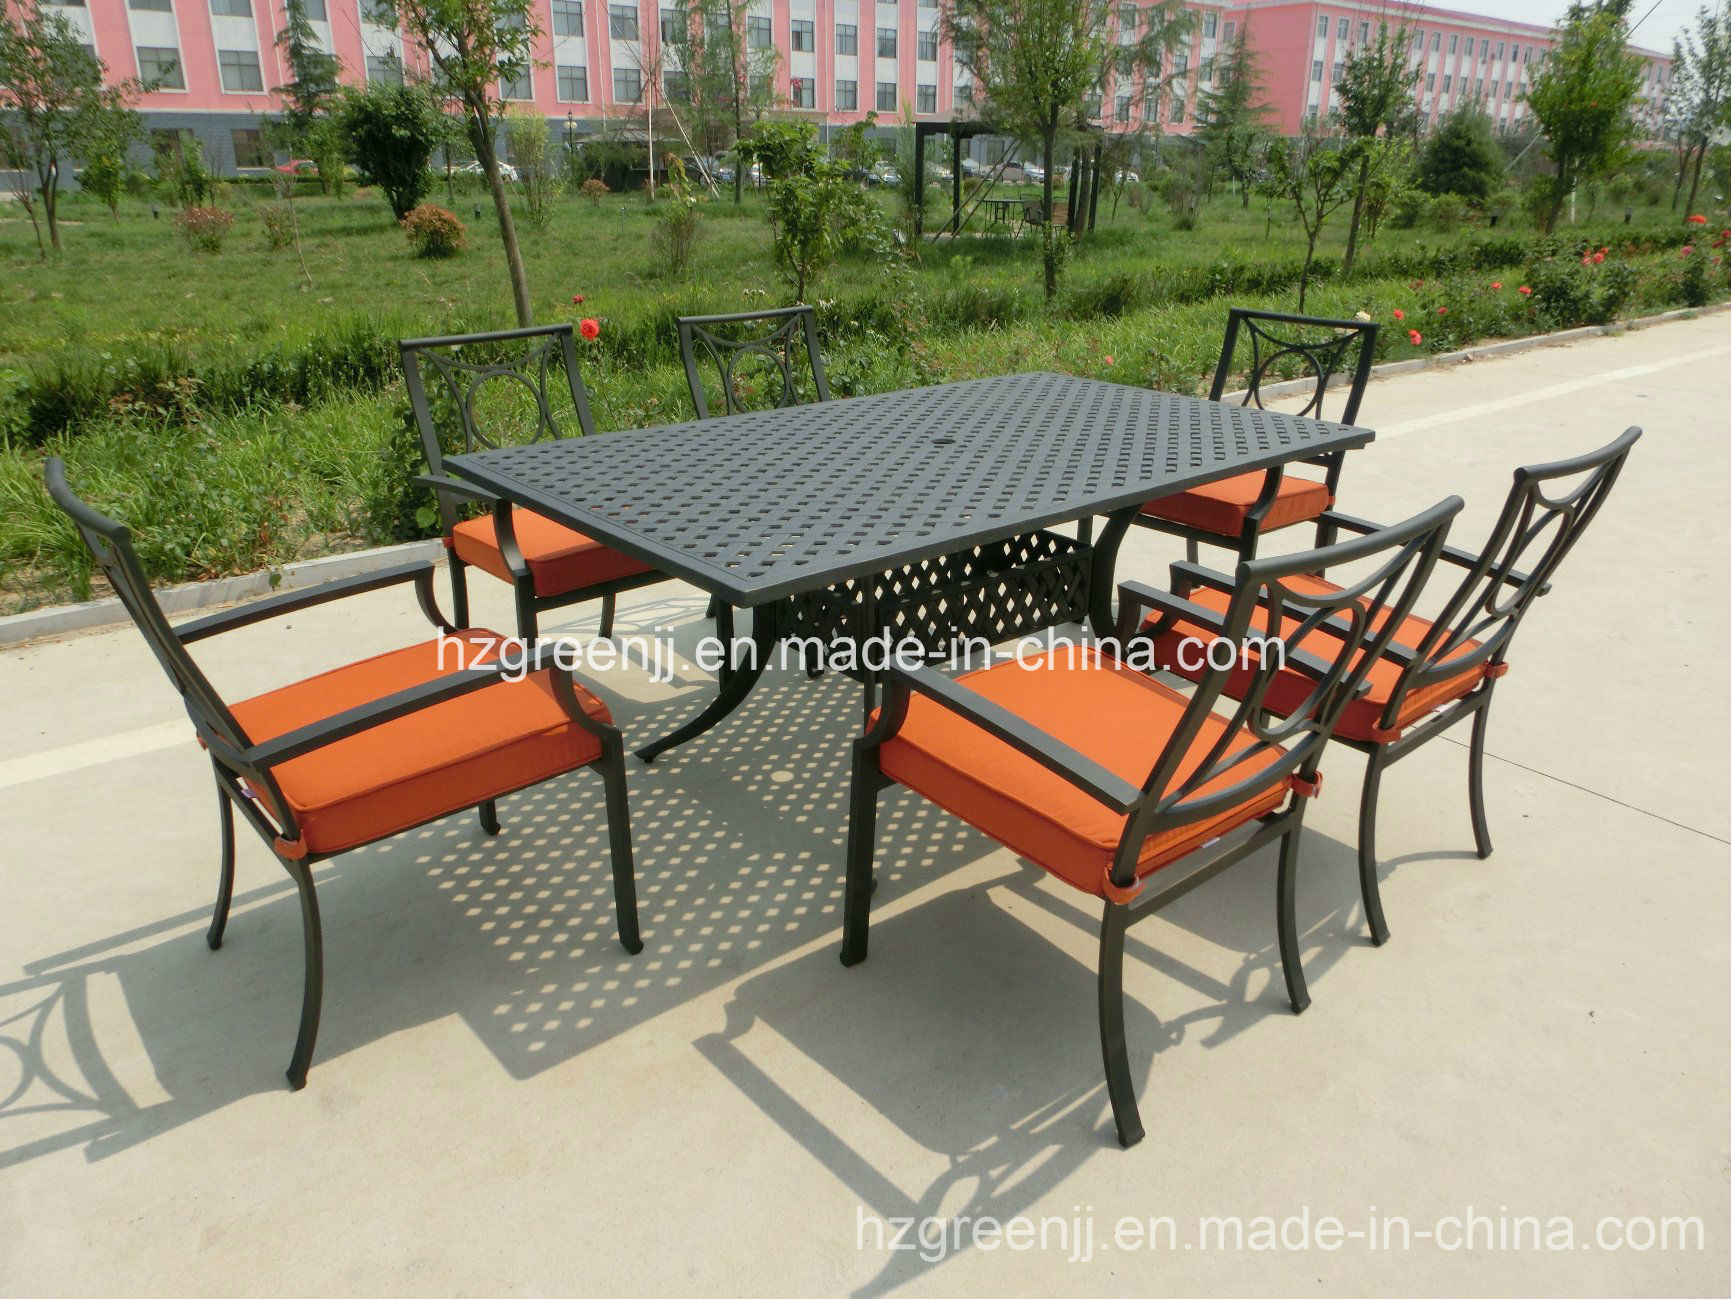 Power Coating 7 Pieces Arm Chairs Rectangle Table Dining Furniture